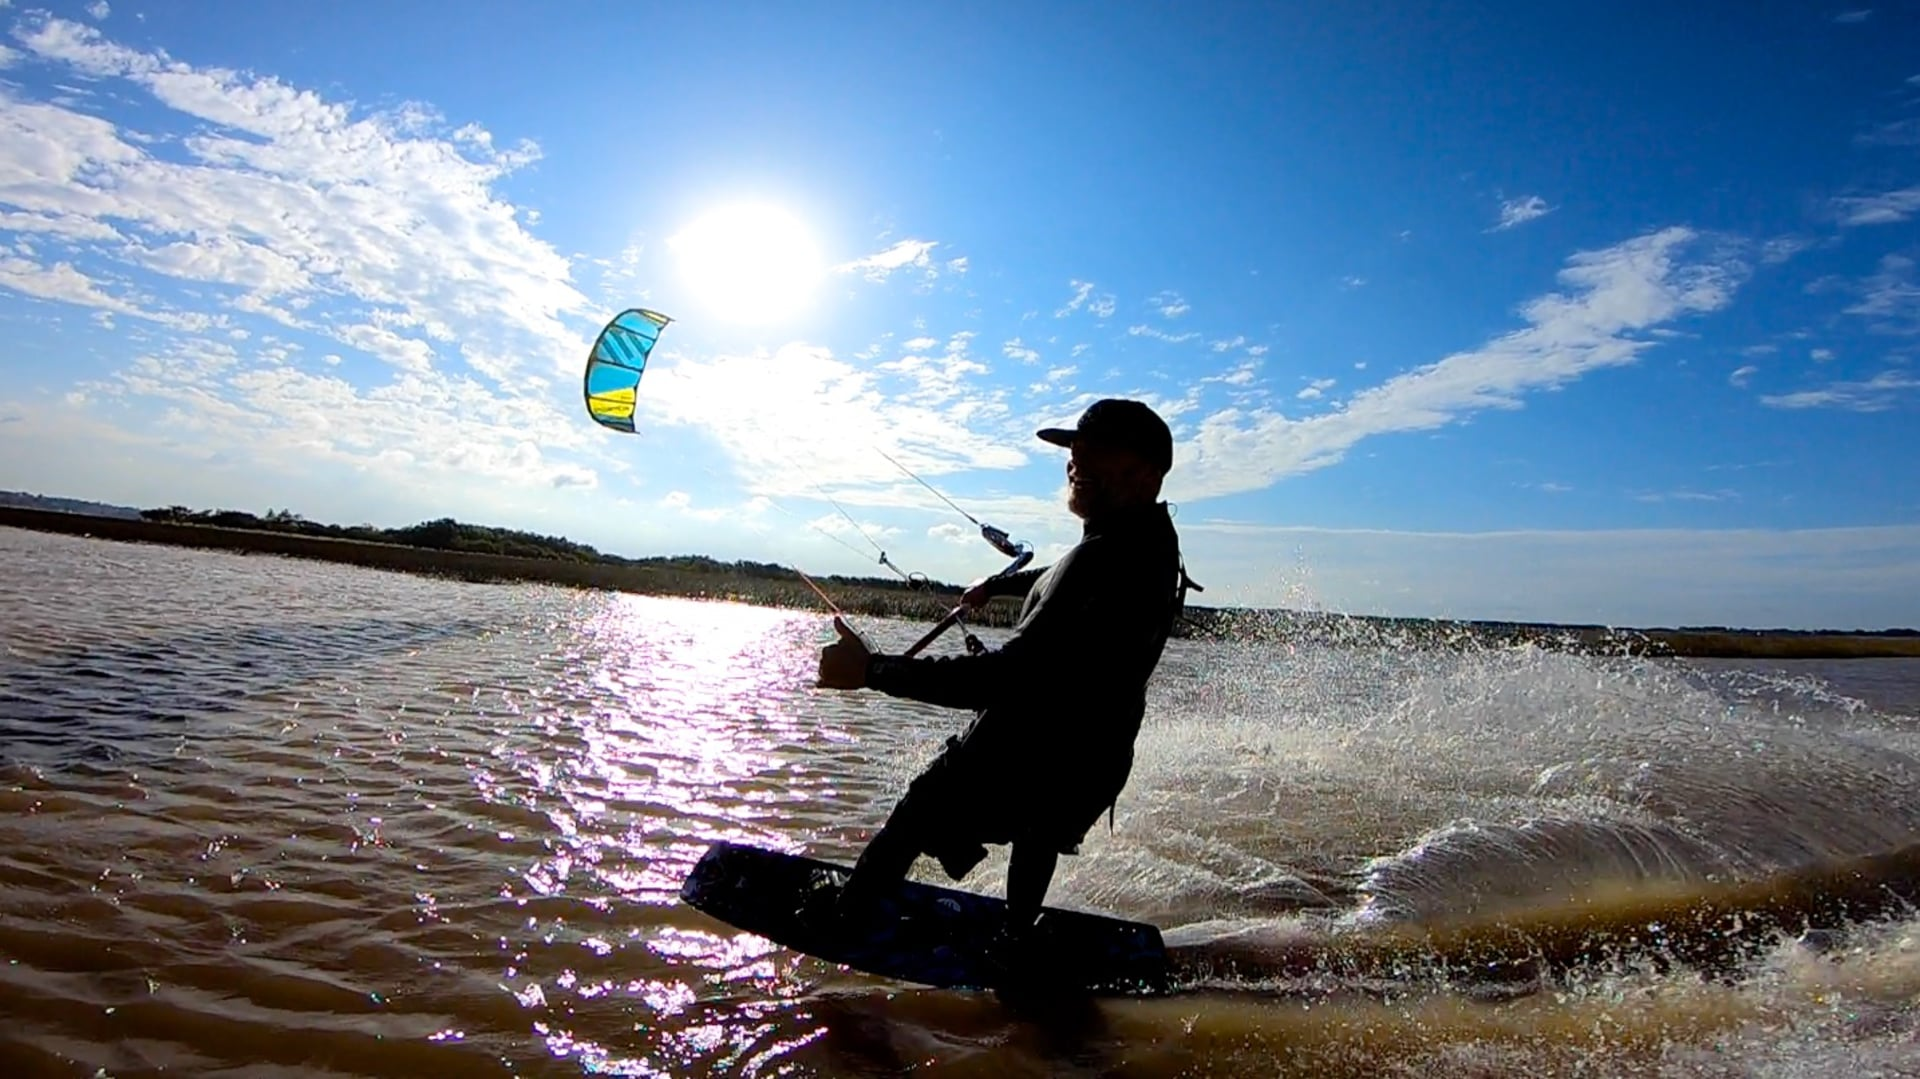 Dimitri Boot Camp with Eric K. - with Epic Kites Kiteboarding